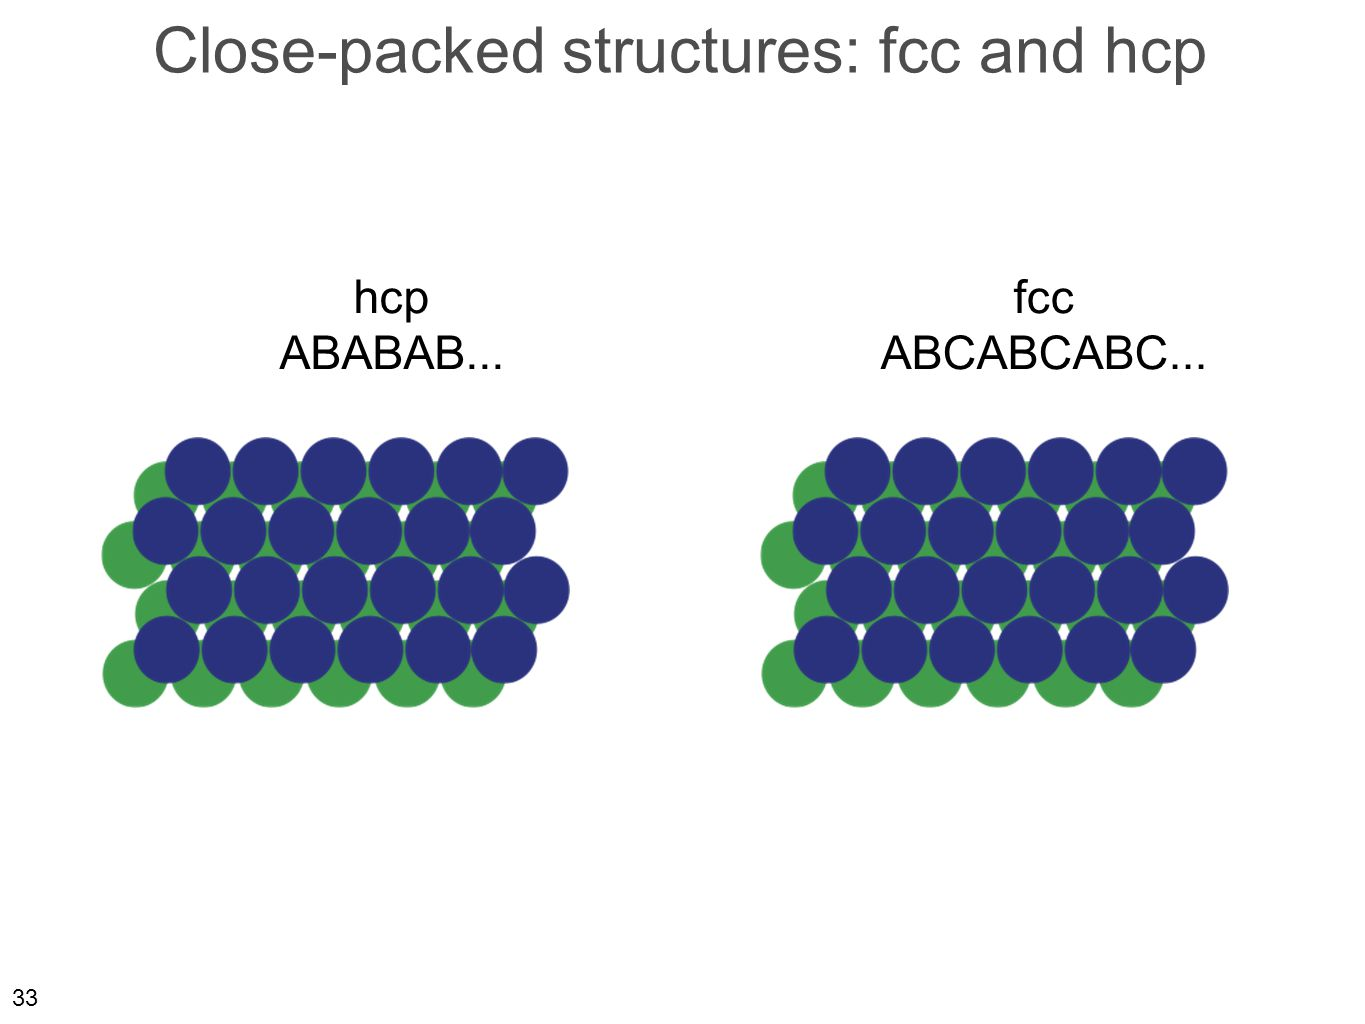 33 Close-packed structures: fcc and hcp hcp ABABAB... fcc ABCABCABC...